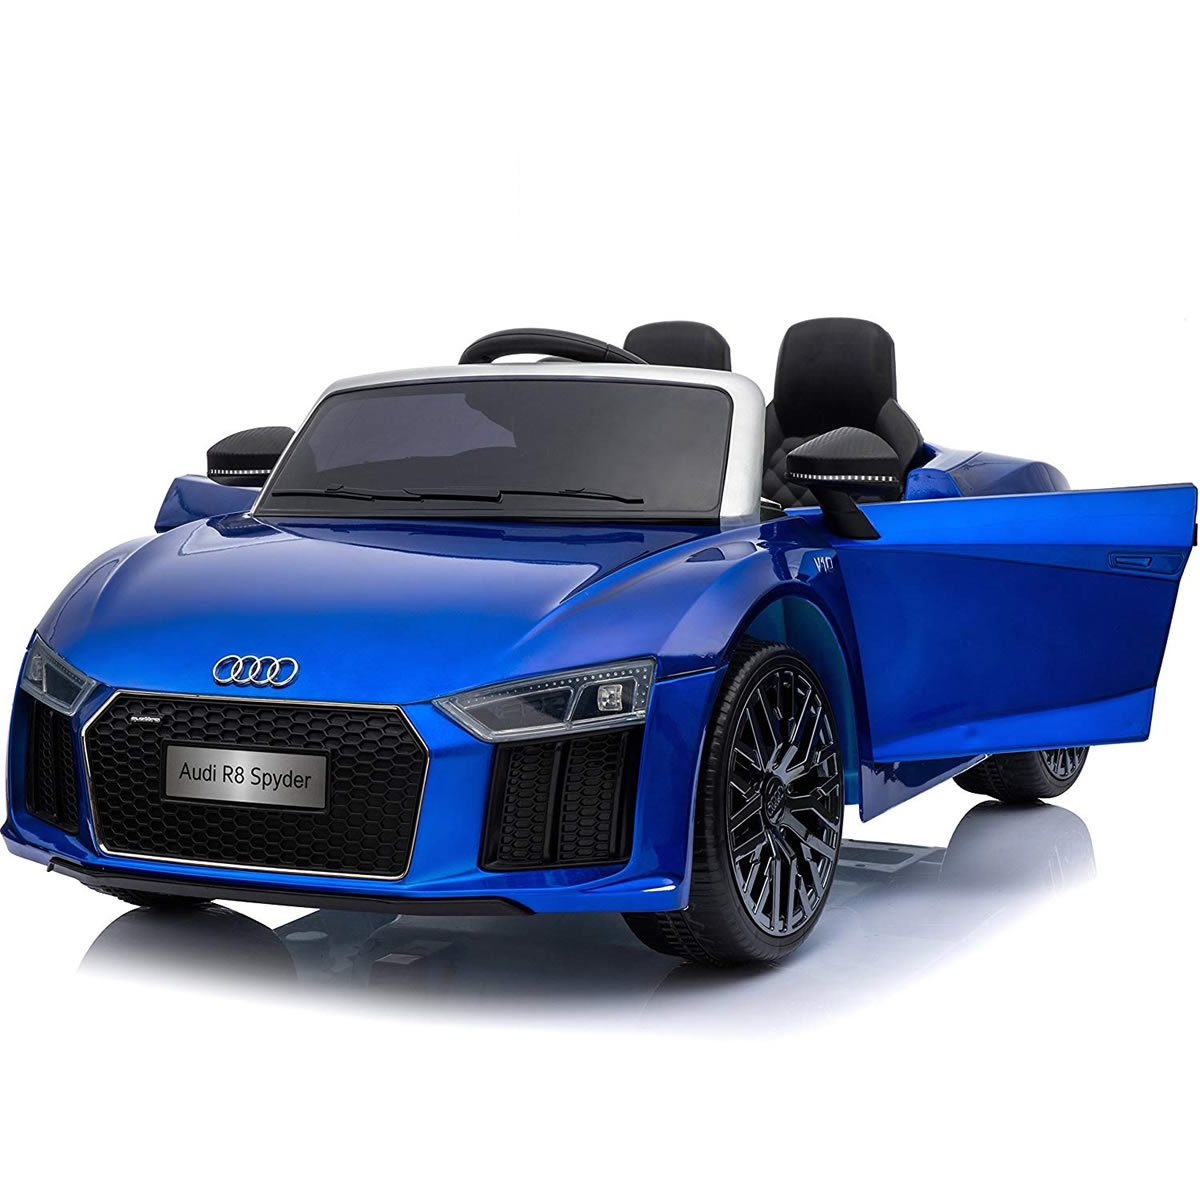 Audi R8 Spyder Compact 12v Licensed Ride on Car with Remote - Blue